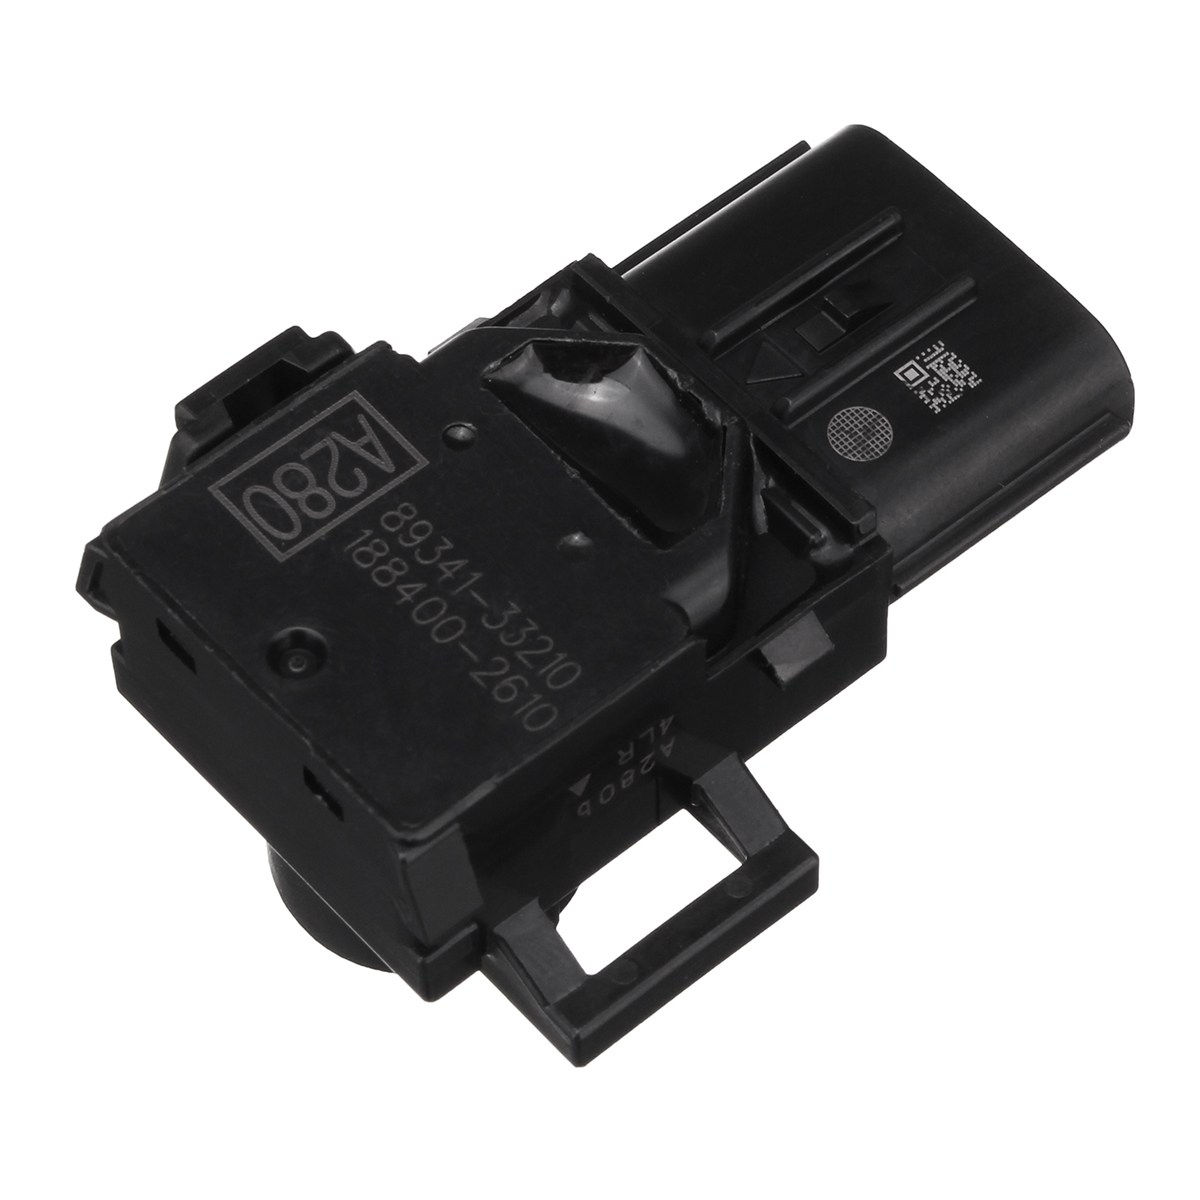 small resolution of  89341 33210 188400 2610 89341 33210 b6 reverse parking aid sensor radar for lexus rx450h rx350 f sport base 3 5l v6 2013 2014 in parking sensors from